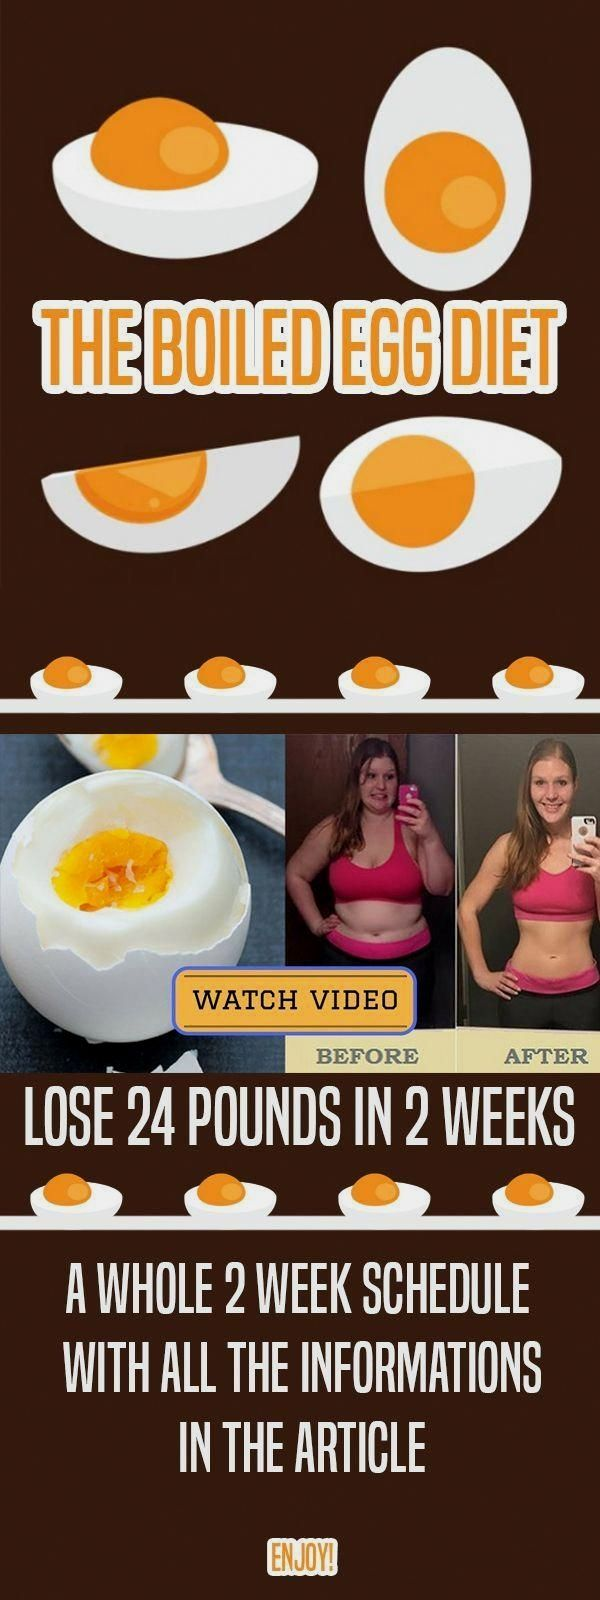 Lose Weight Using The Egg Diet Plan - Health Care